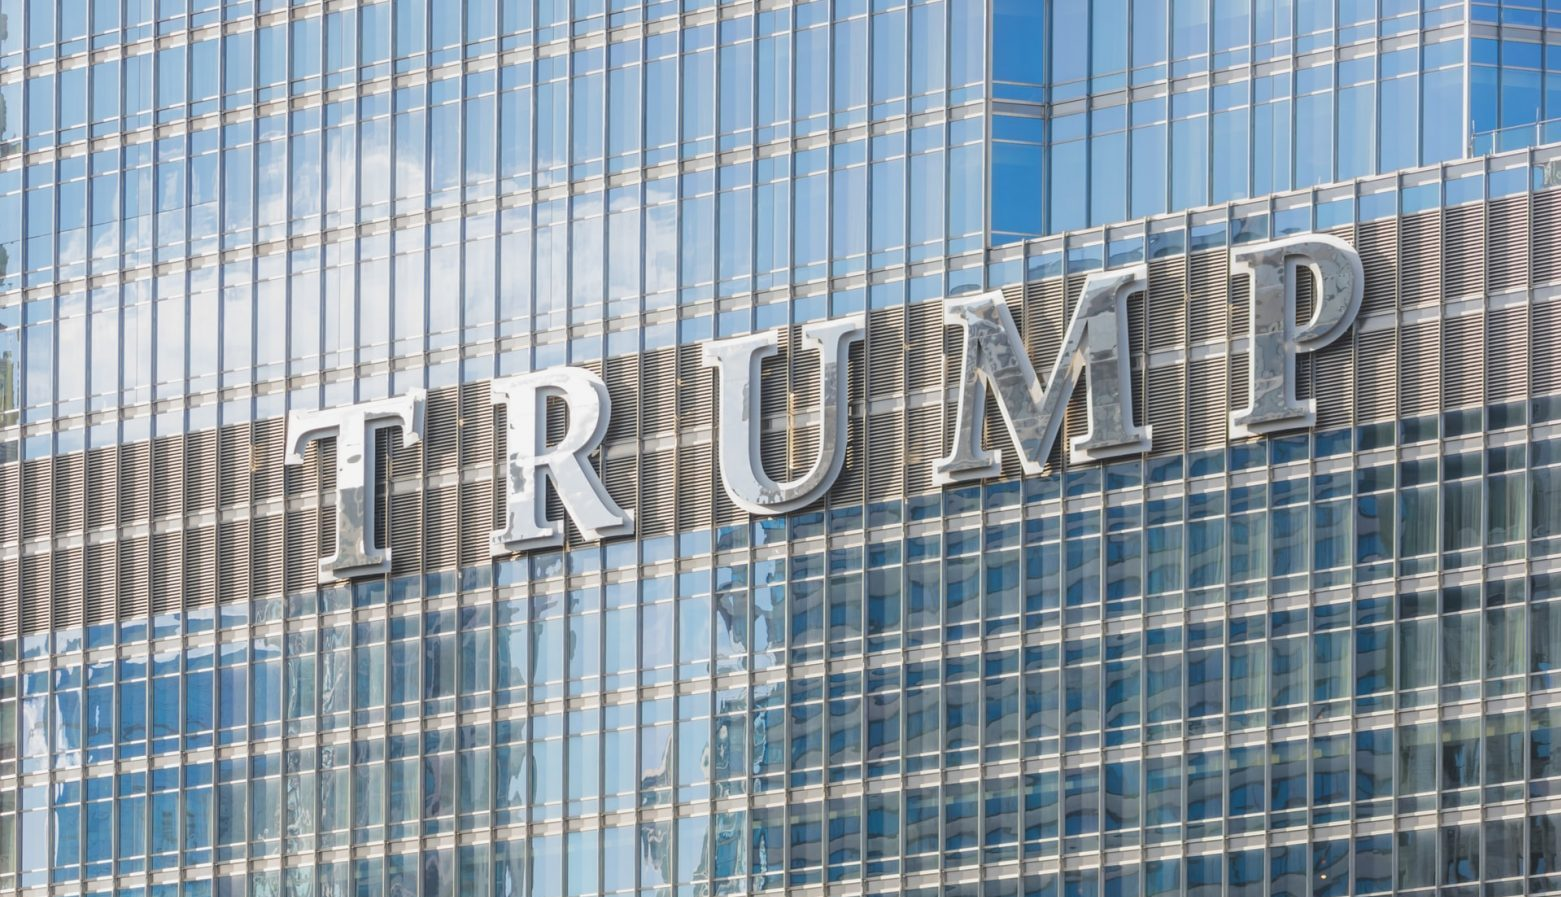 Donald Trump is Due a $1M Tax Refund for his Downtown Skyscraper